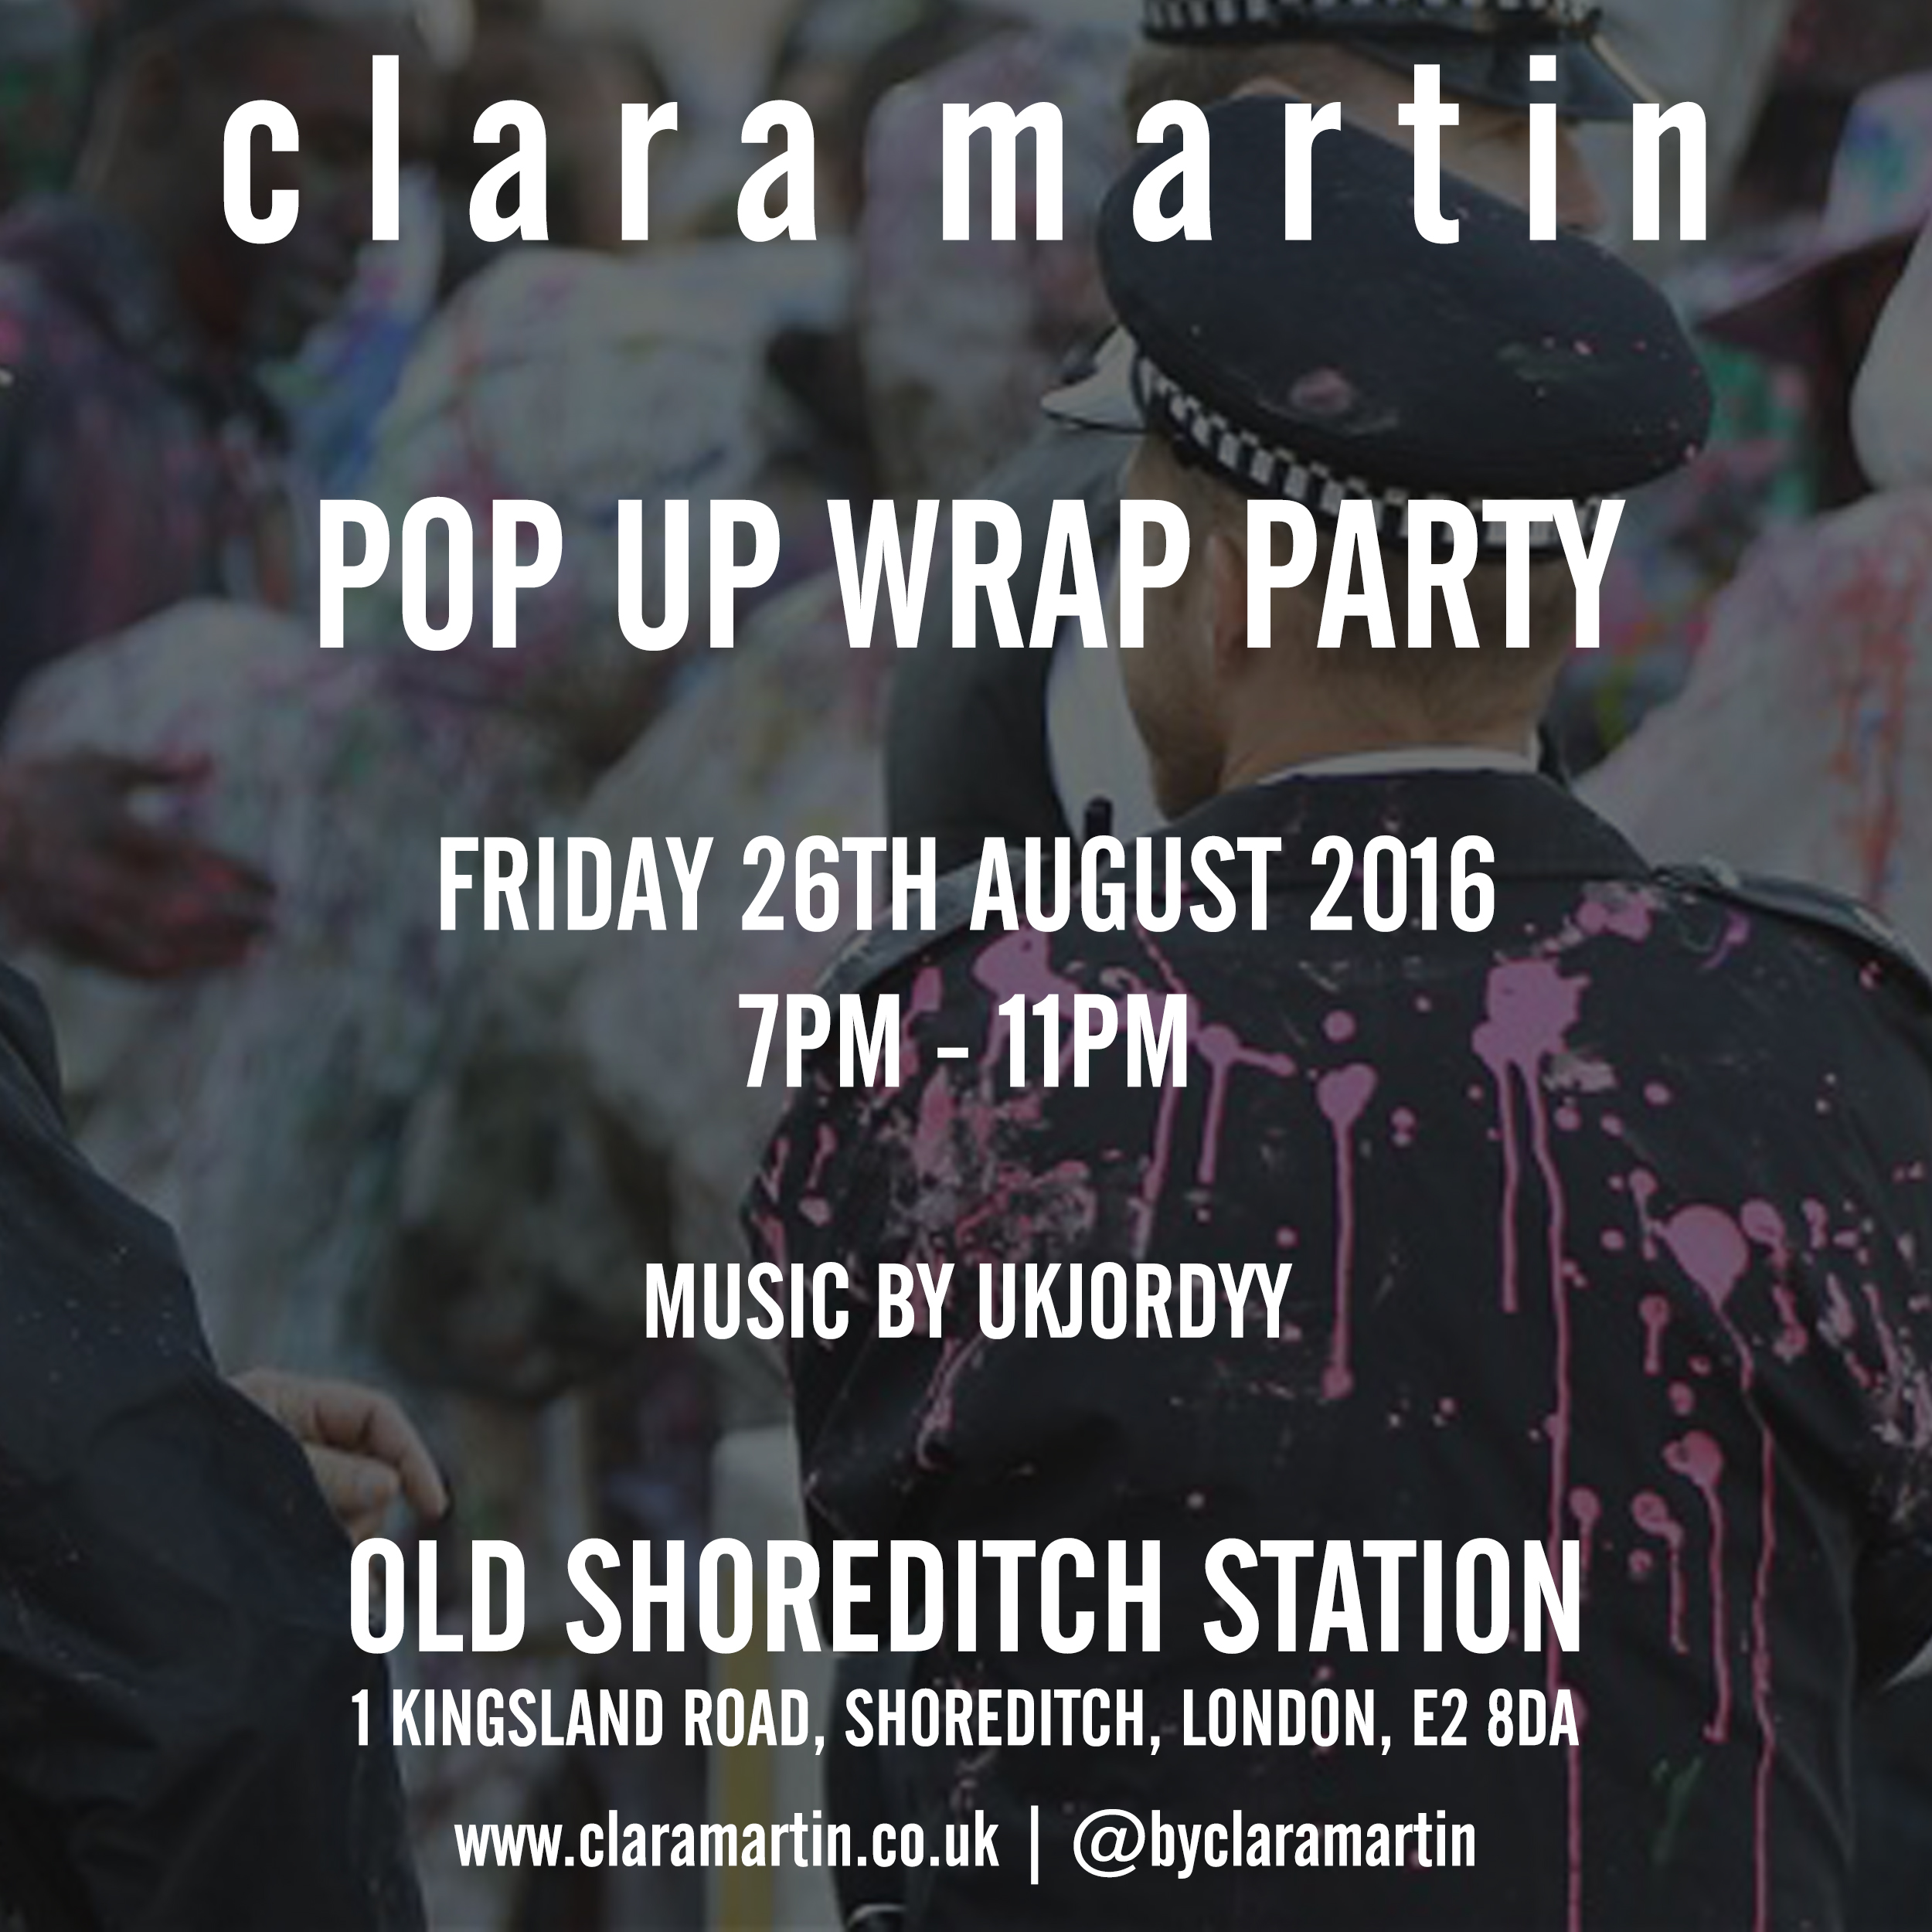 clara-martin-pop-up-wrap-party